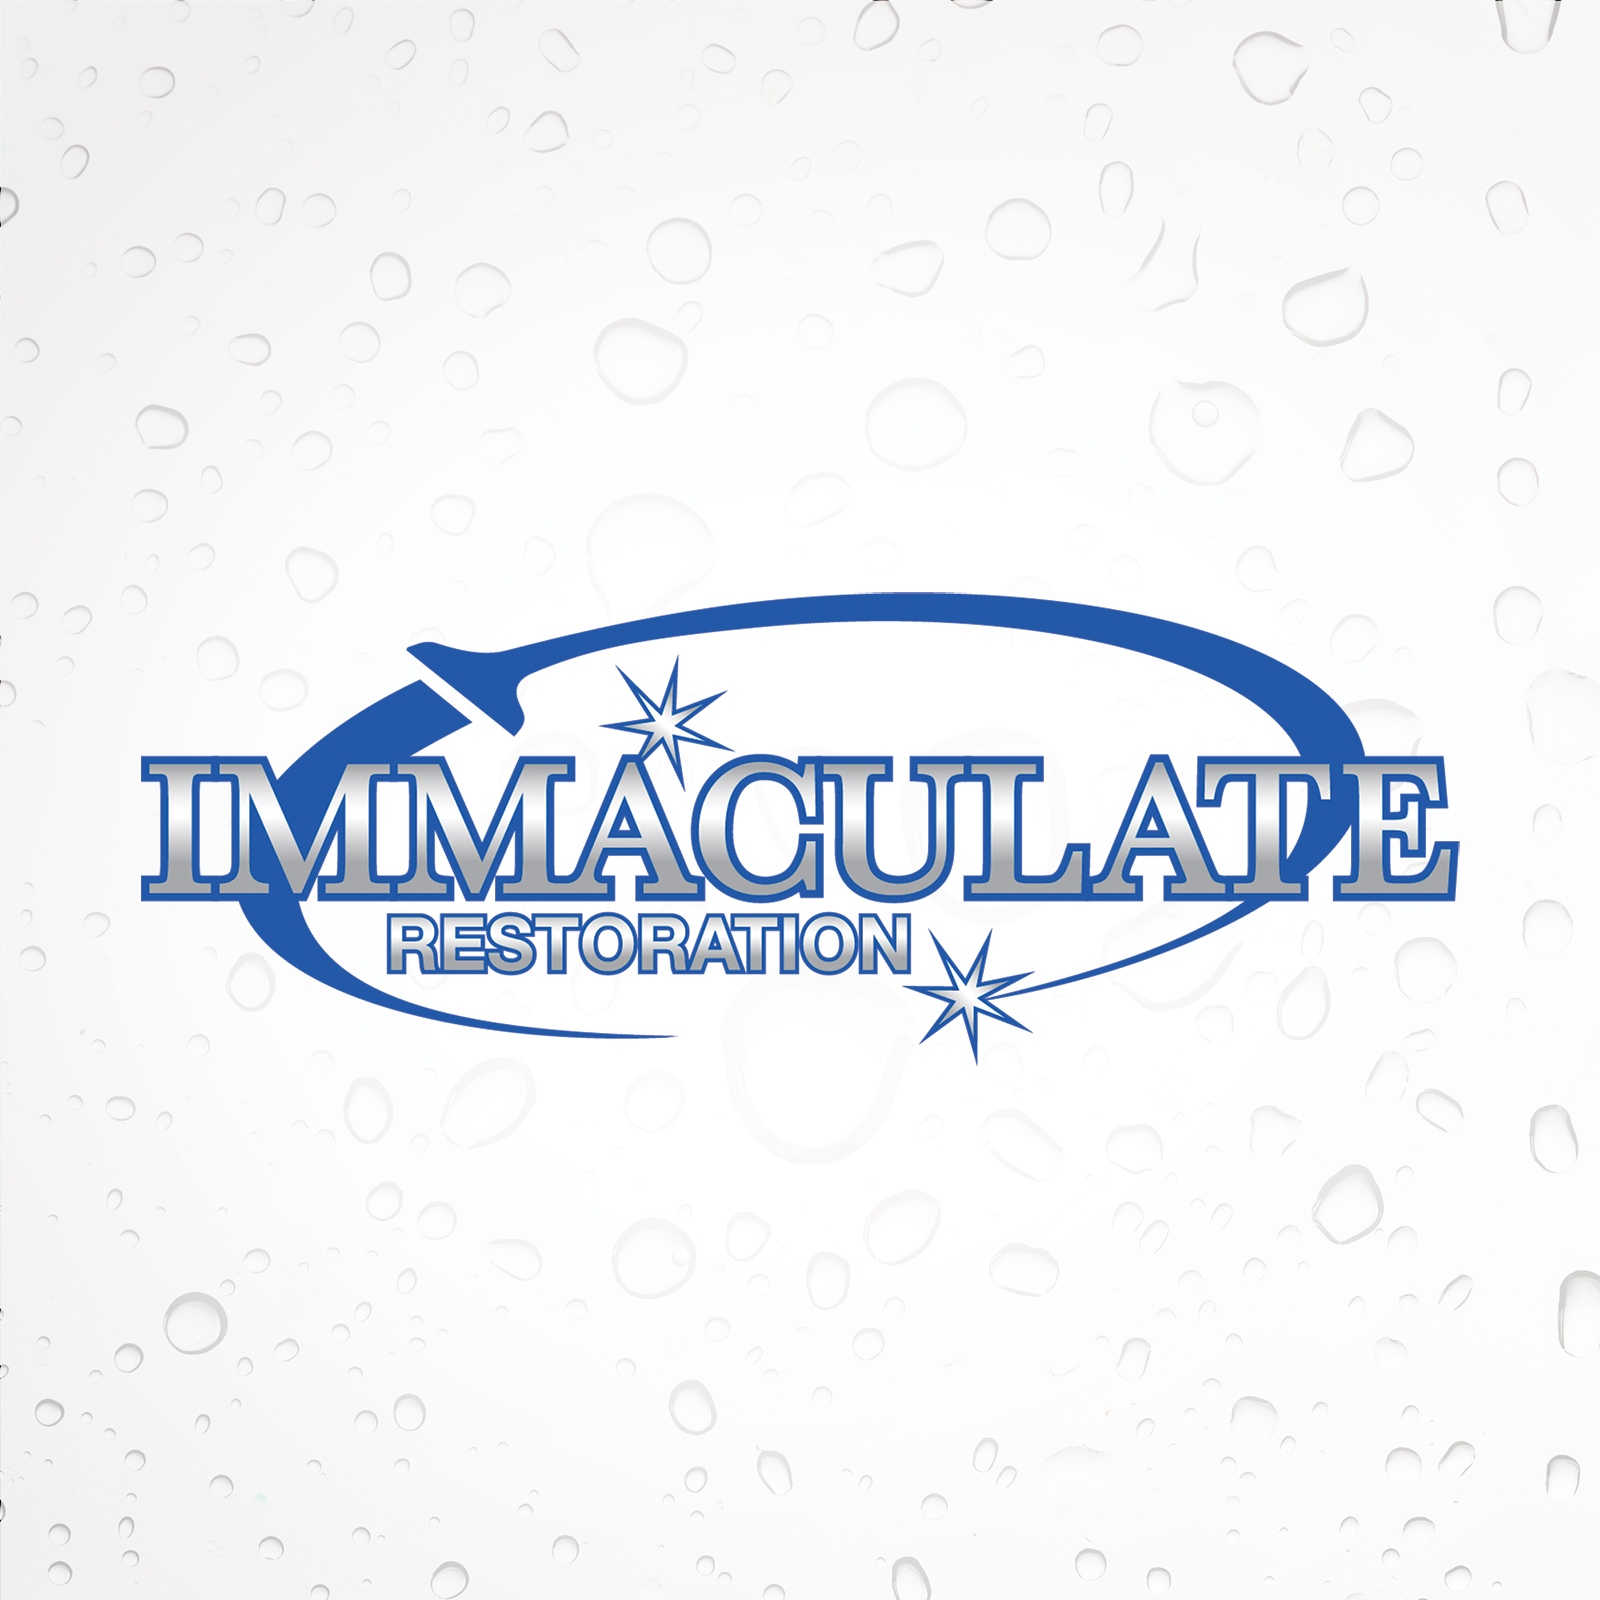 Immaculate Restoration and Carpet Care